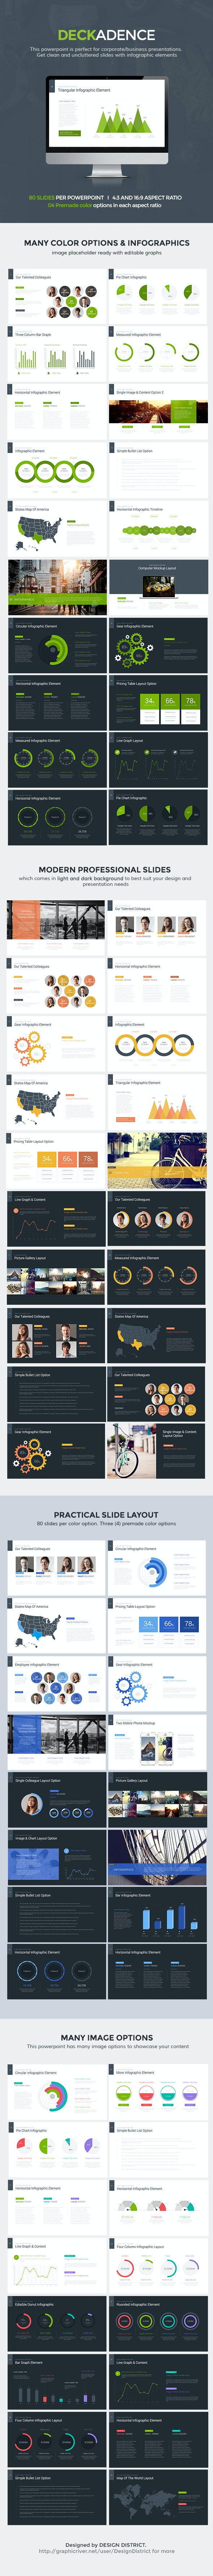 Decker Powerpoint Template - Pitch Deck PowerPoint Templates